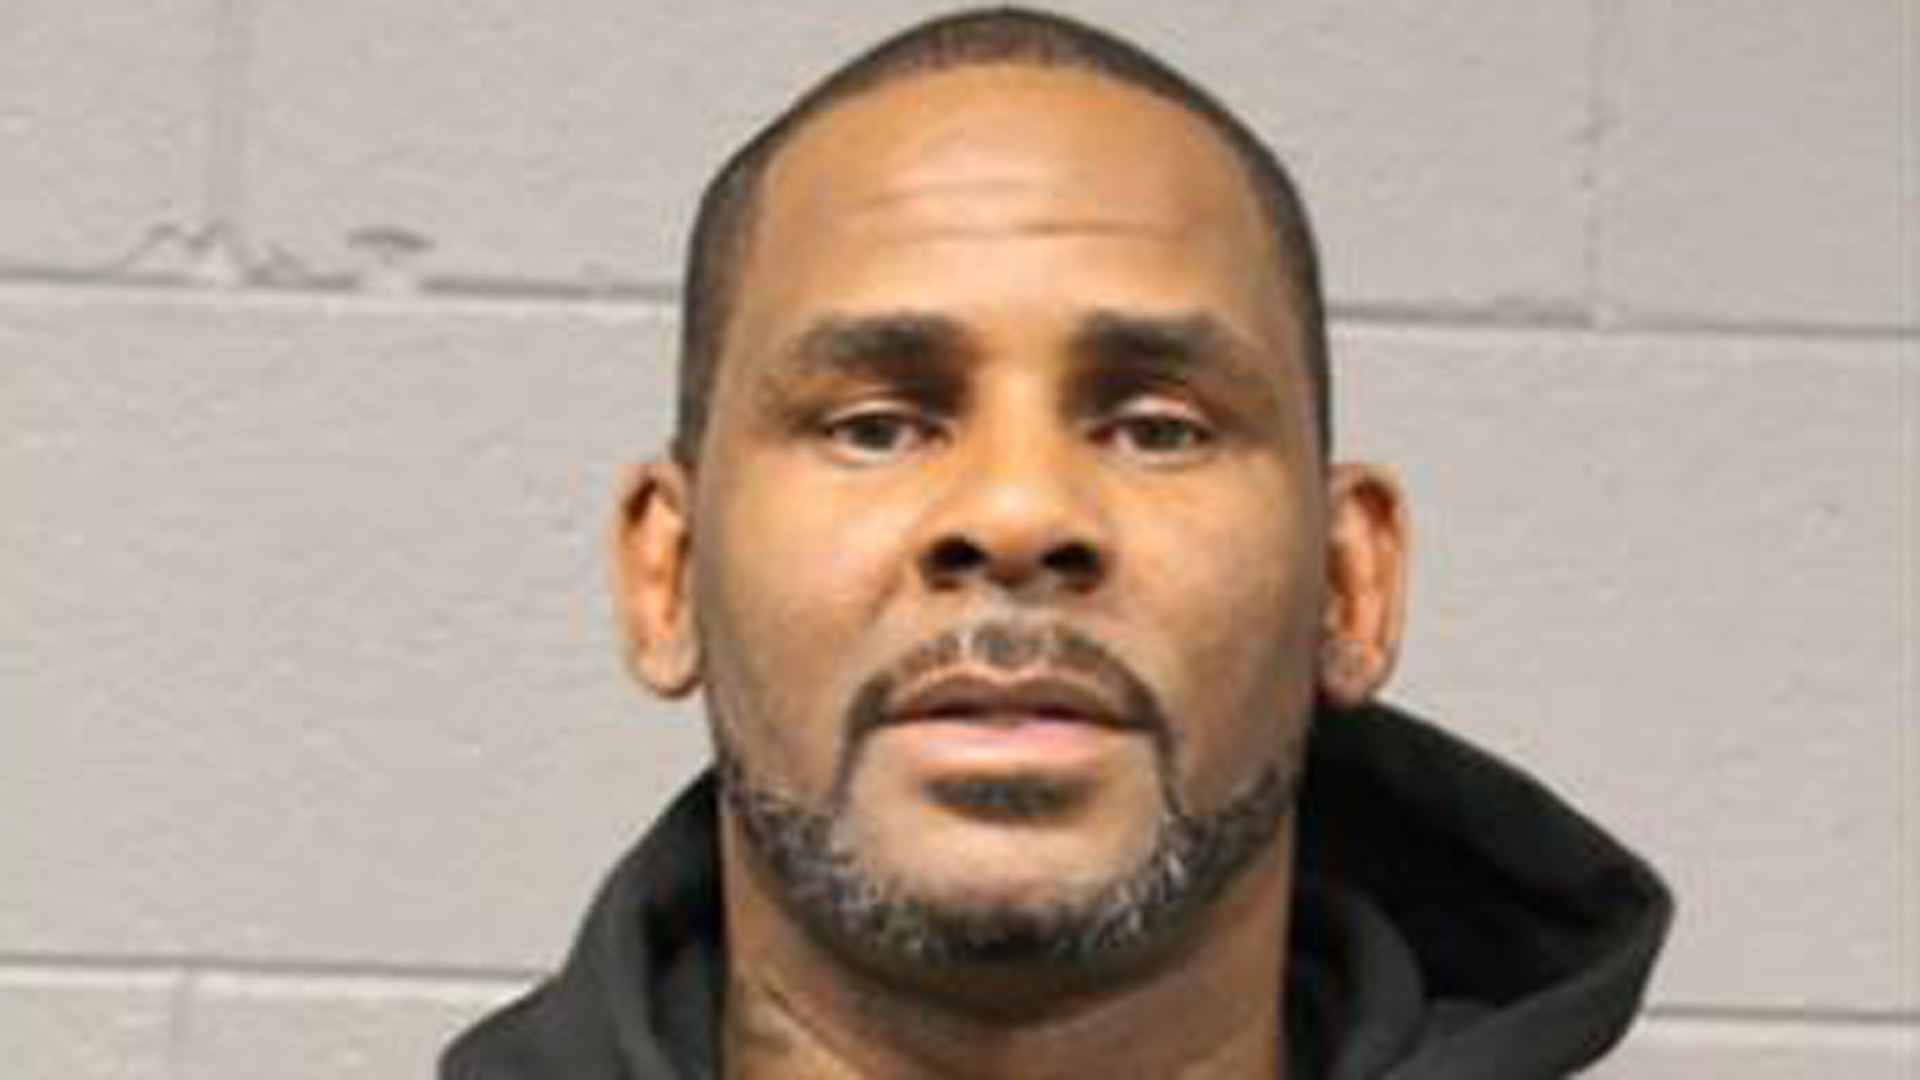 R. Kelly is seen in an undated booking photo. (Credit: Chicago Police Department via CNN)